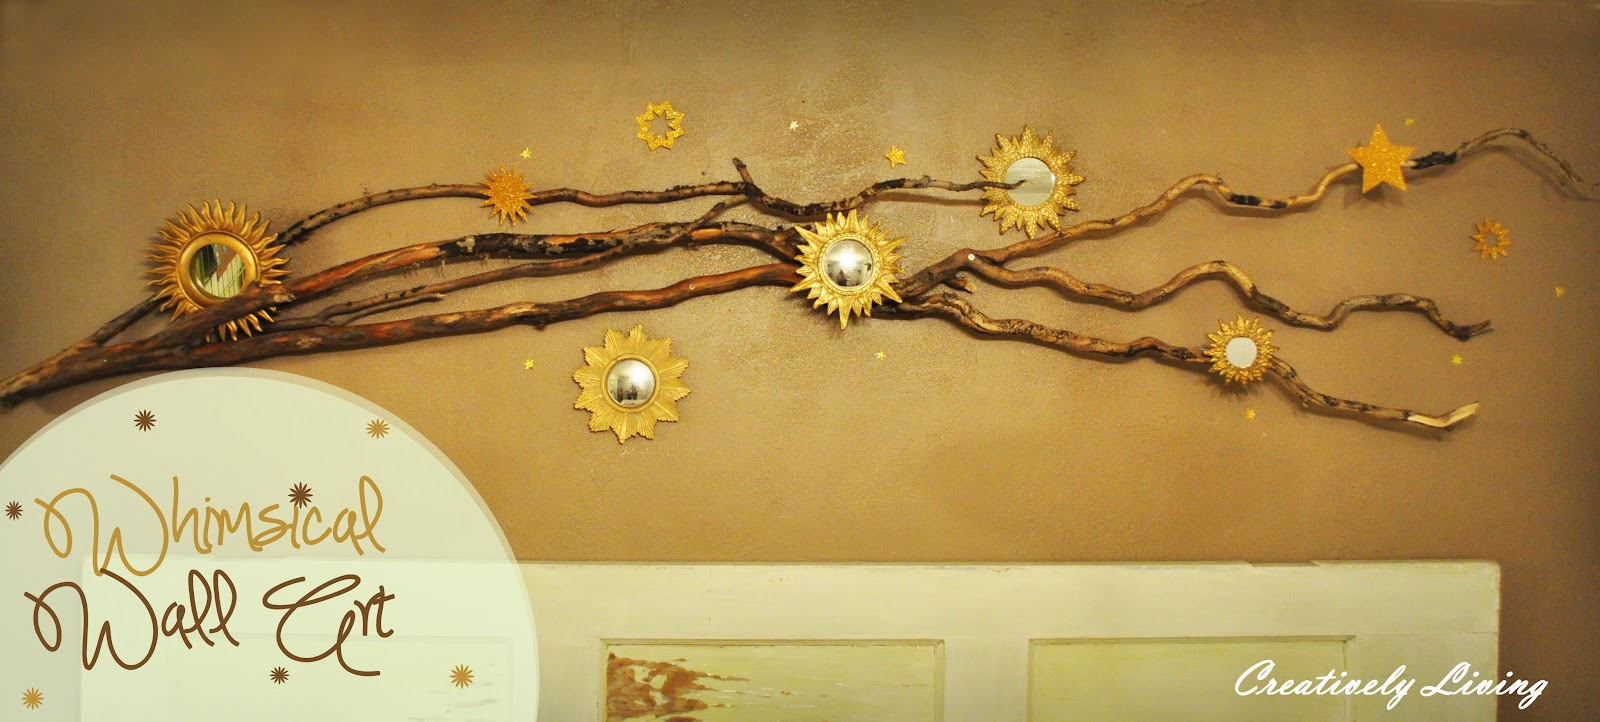 Whimsical Wall Art whimsical branch wall art - creatively living blog